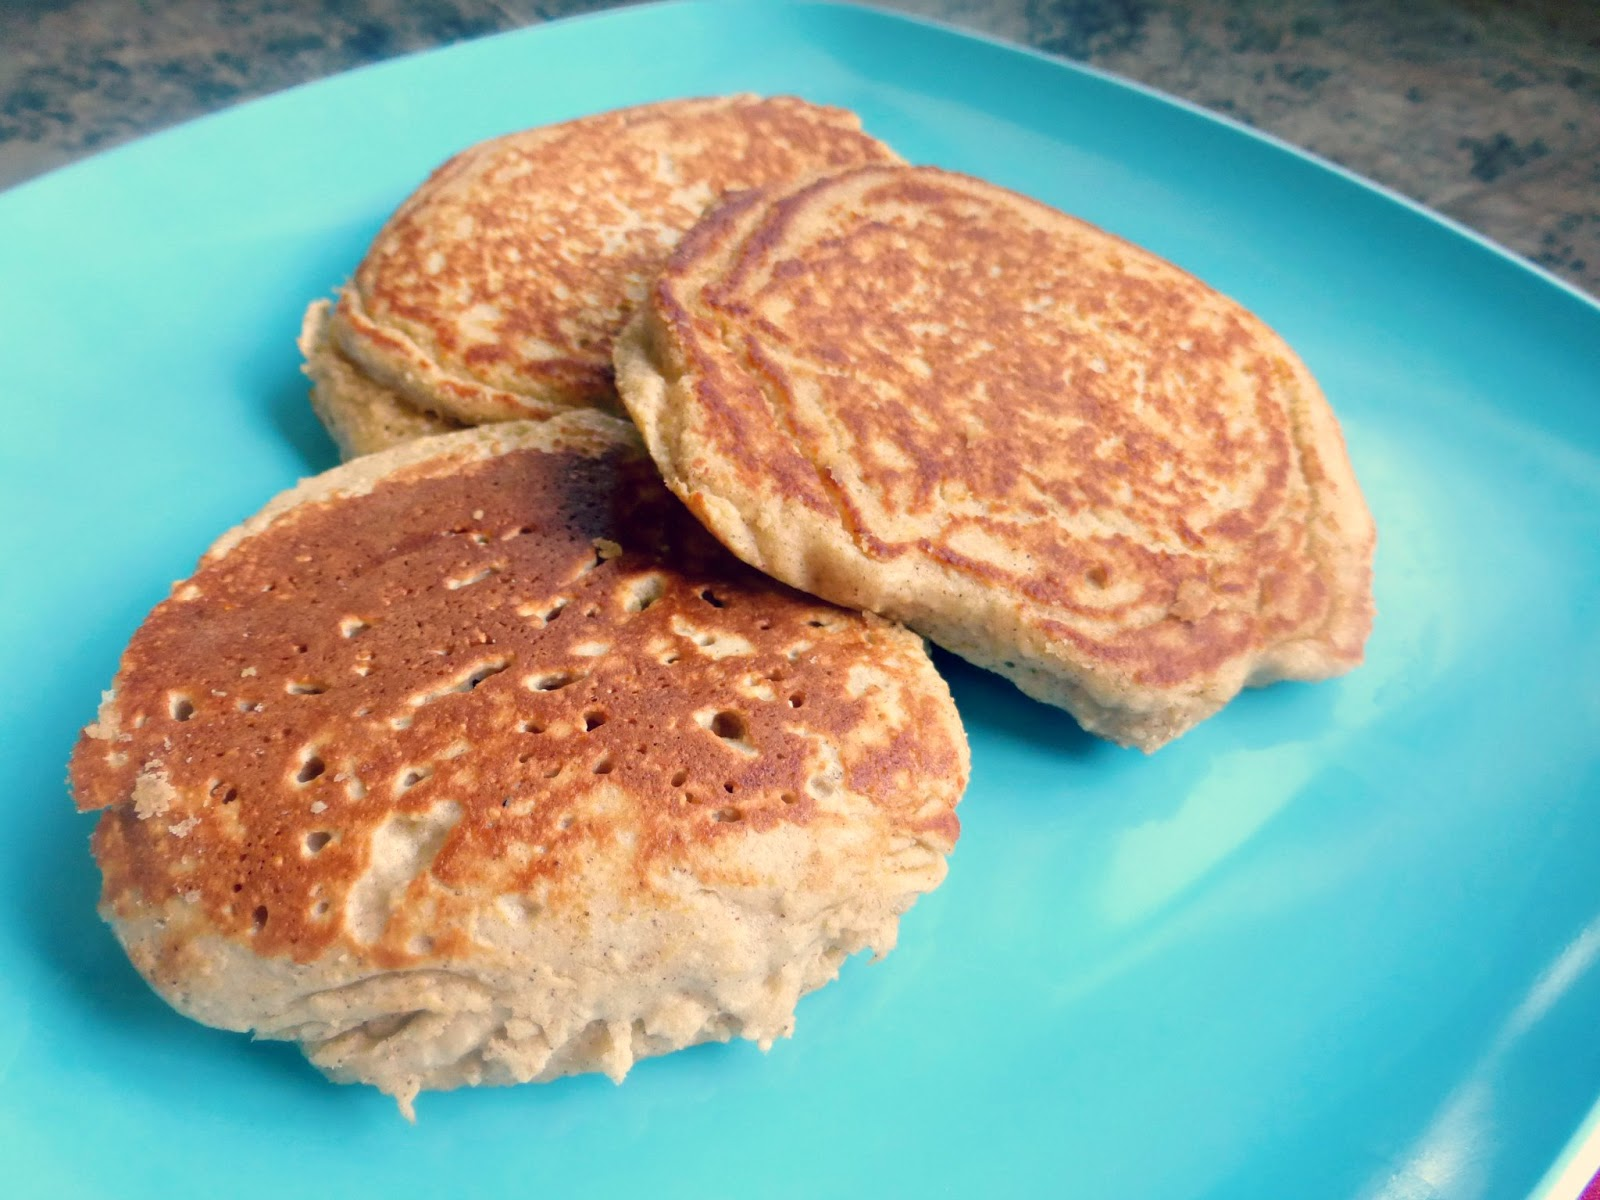 buttermilk style gluten-free pancakes with oat flour